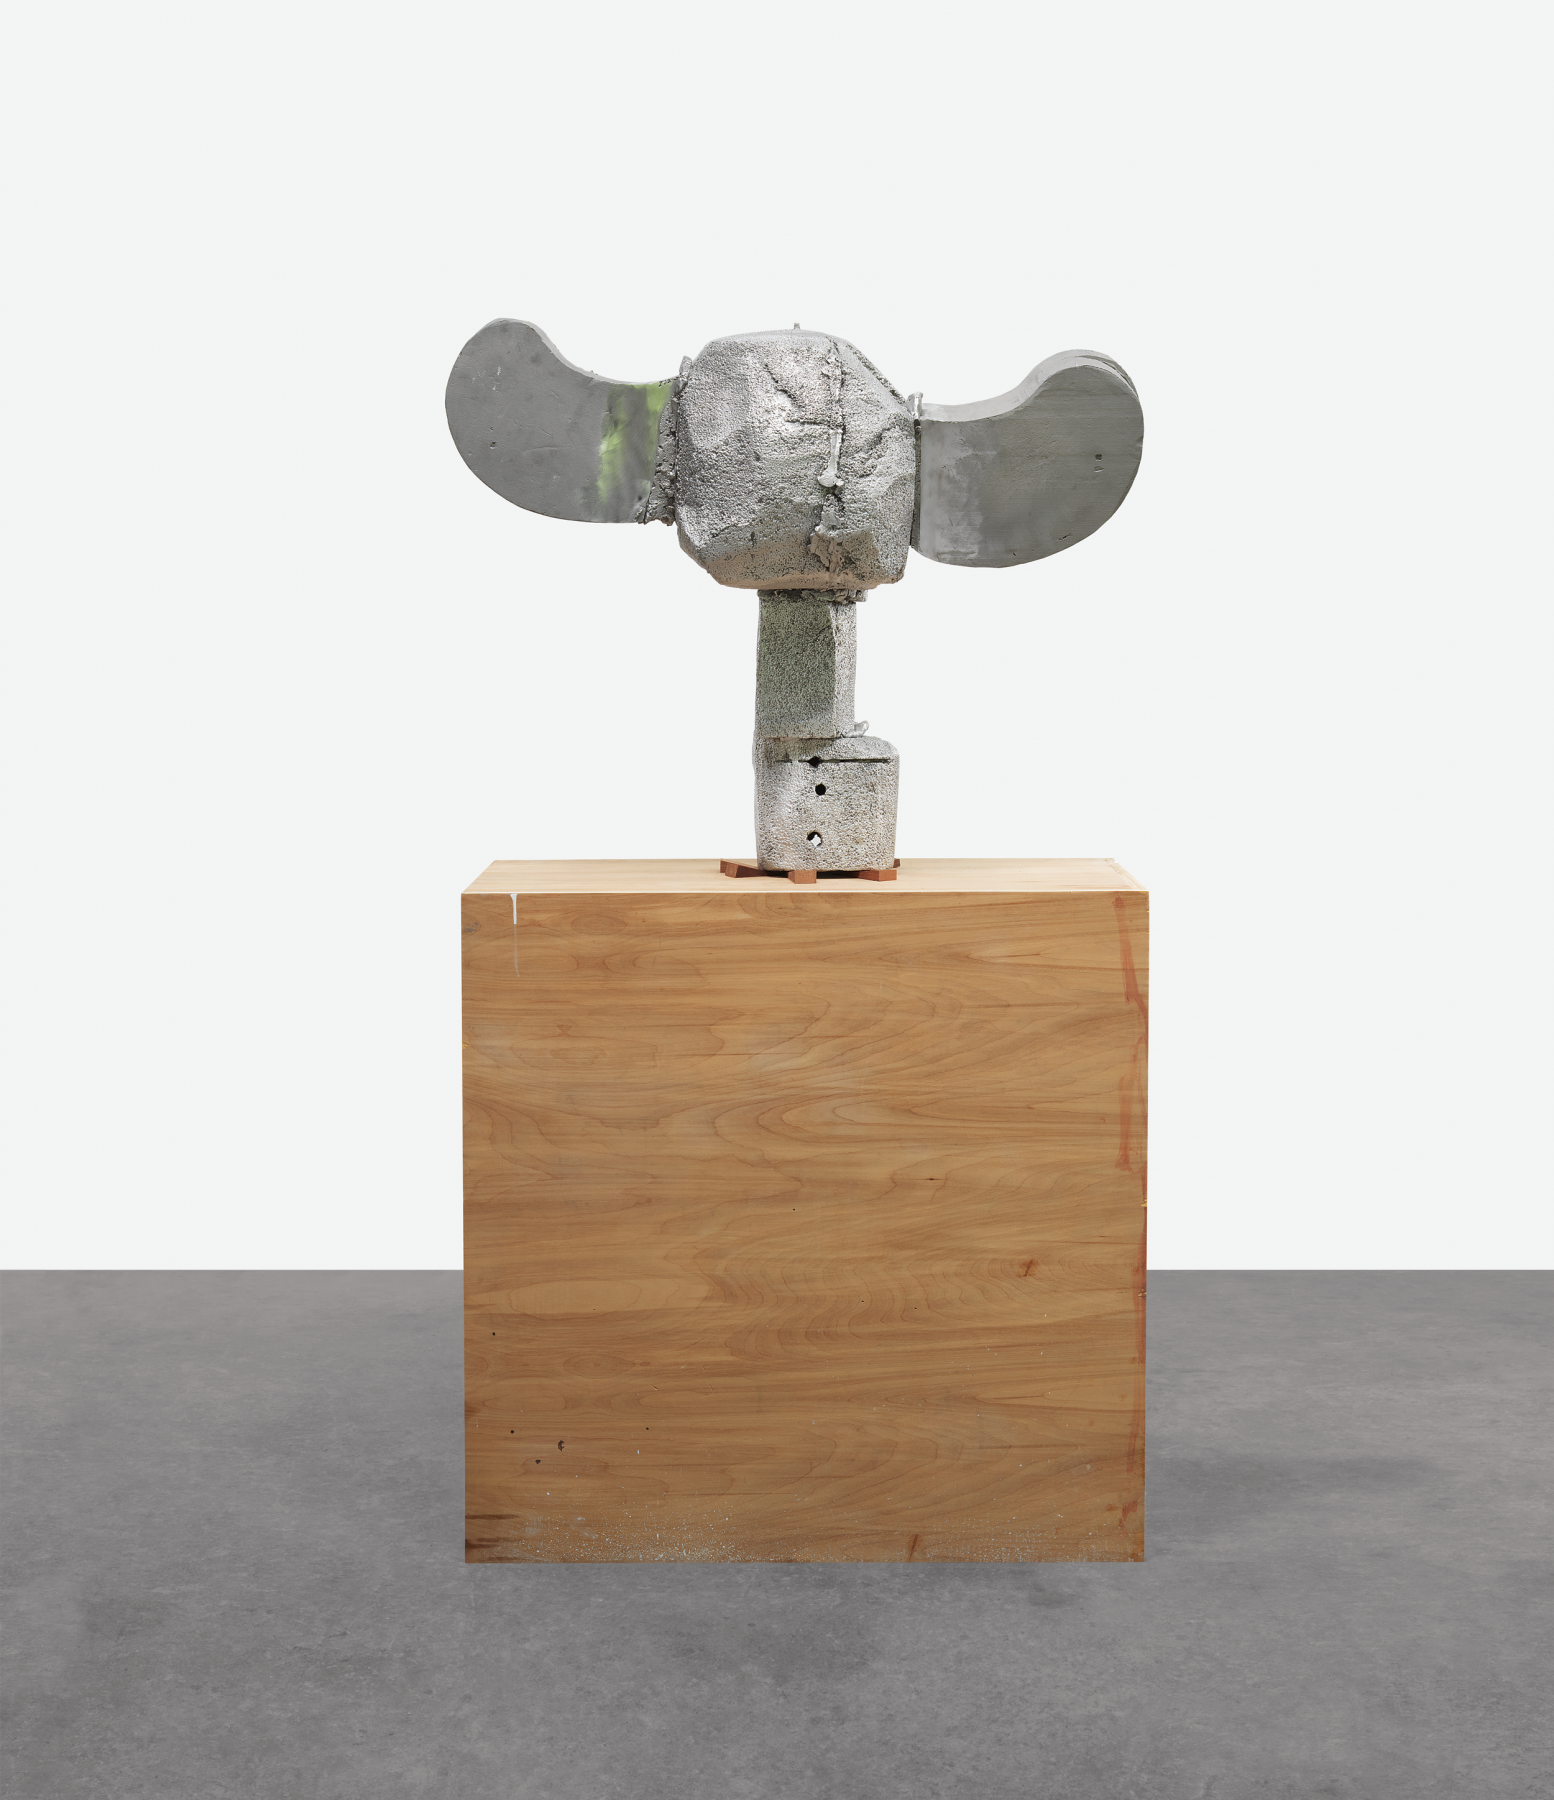 Block Head, 2013, Aluminum and wood